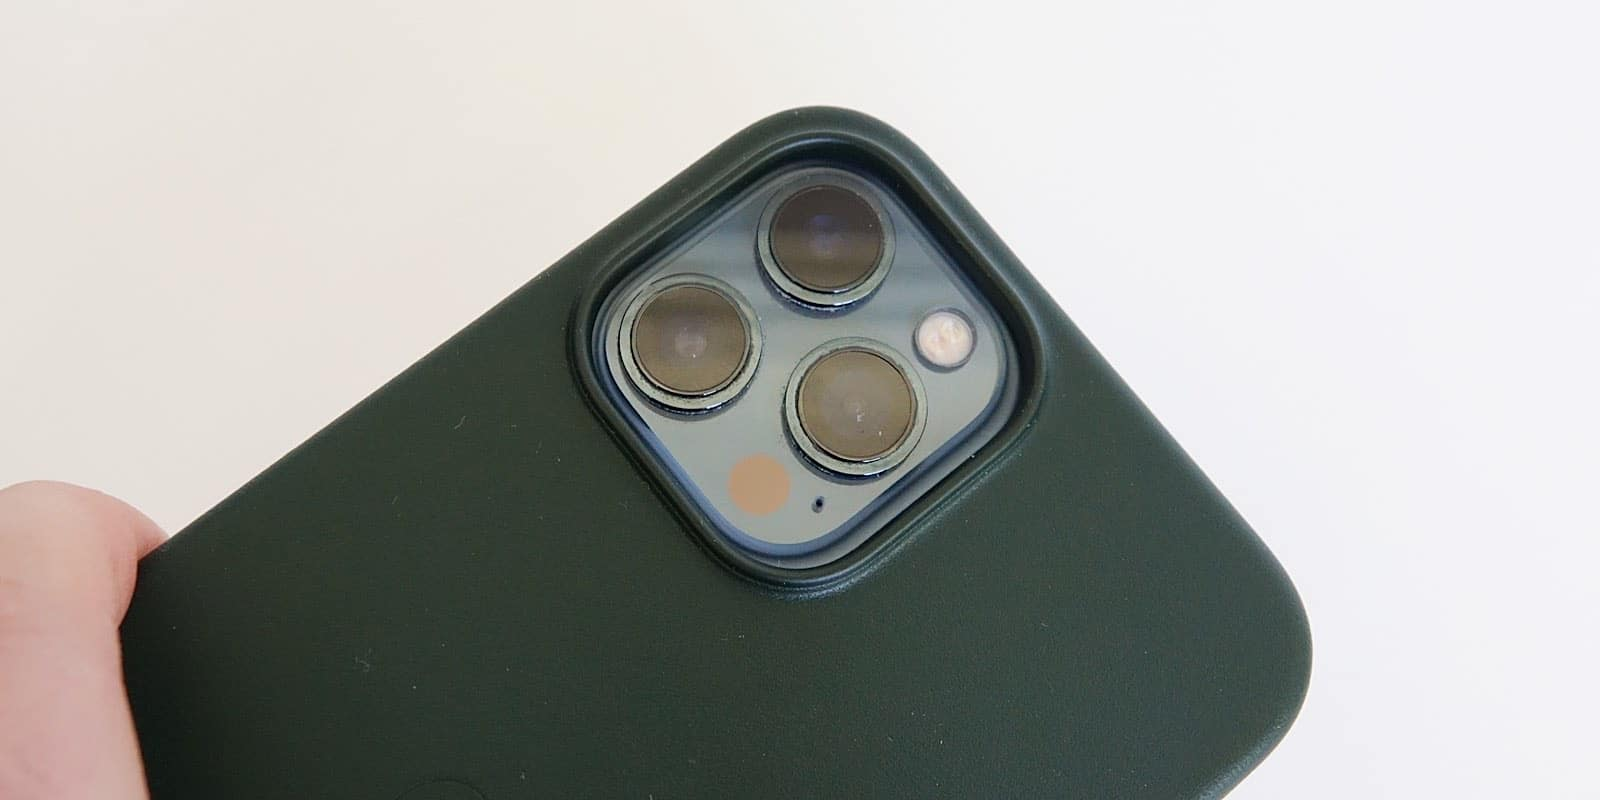 The 12 Pro Max more easily fits an iPhone 13 Pro Max case.